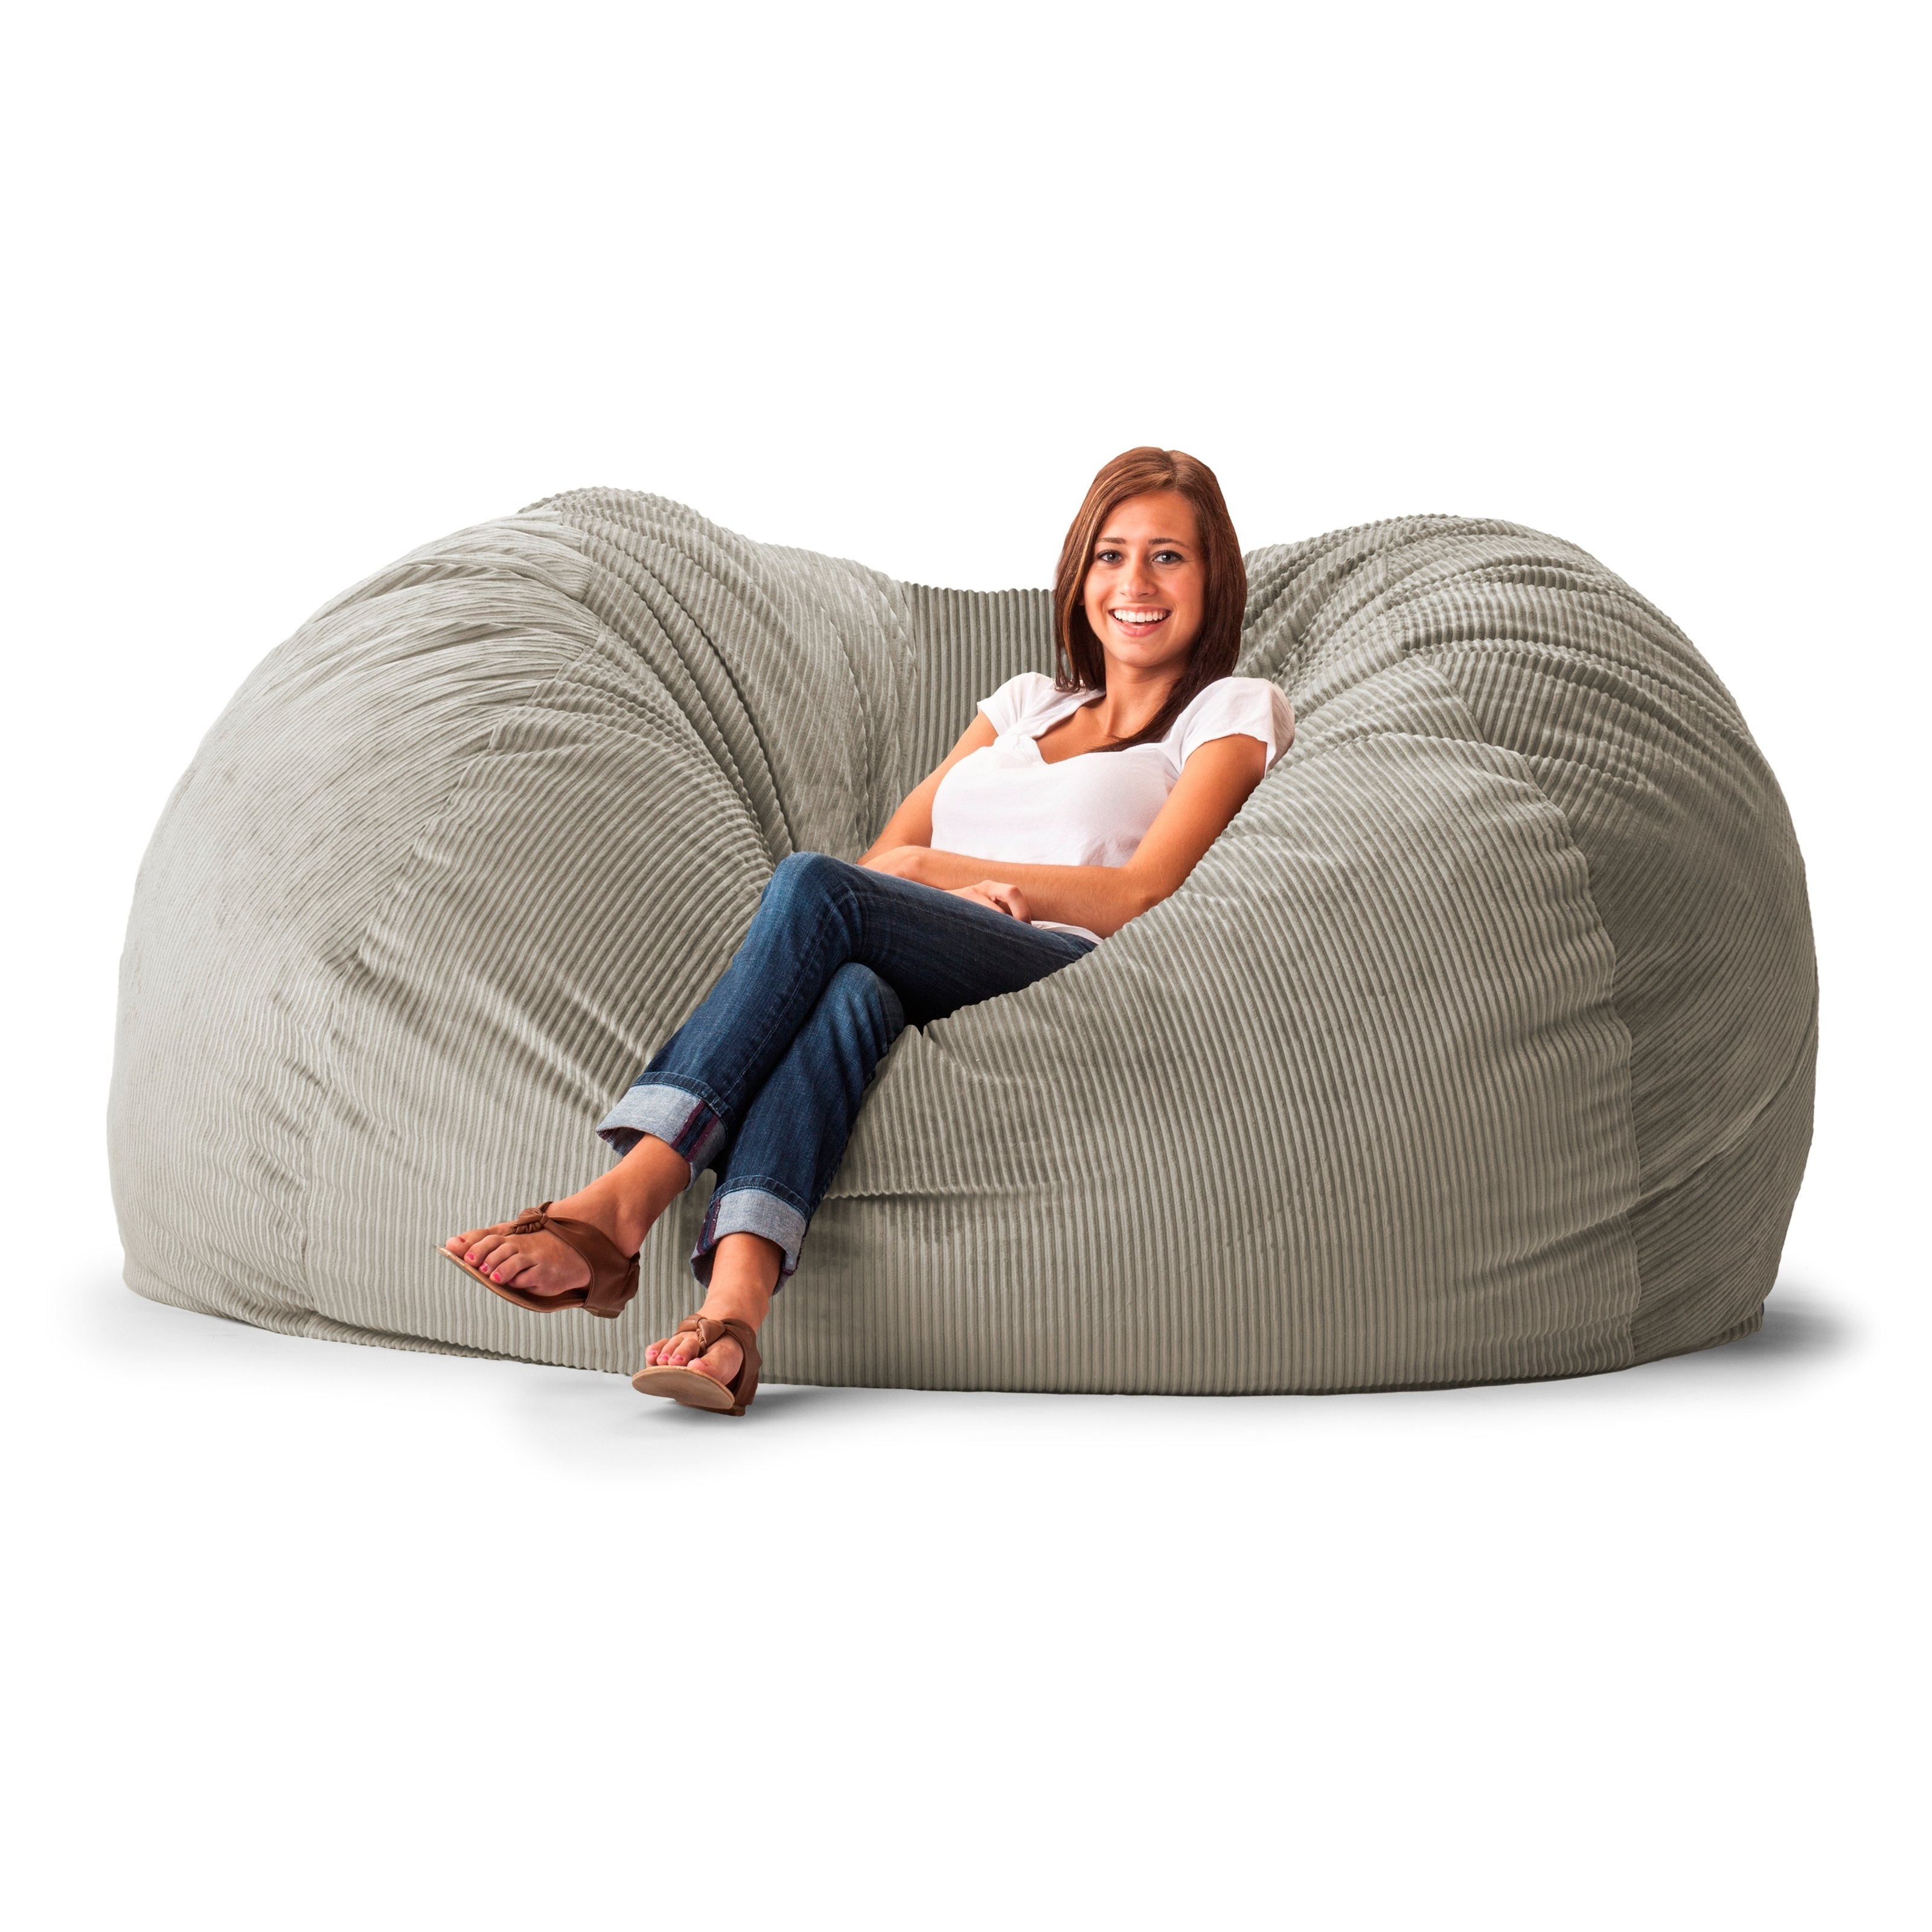 Bean Bag Sofas And Chairs For Most Popular Comfort Bean Bag Sofa – Florist H&g (View 3 of 20)